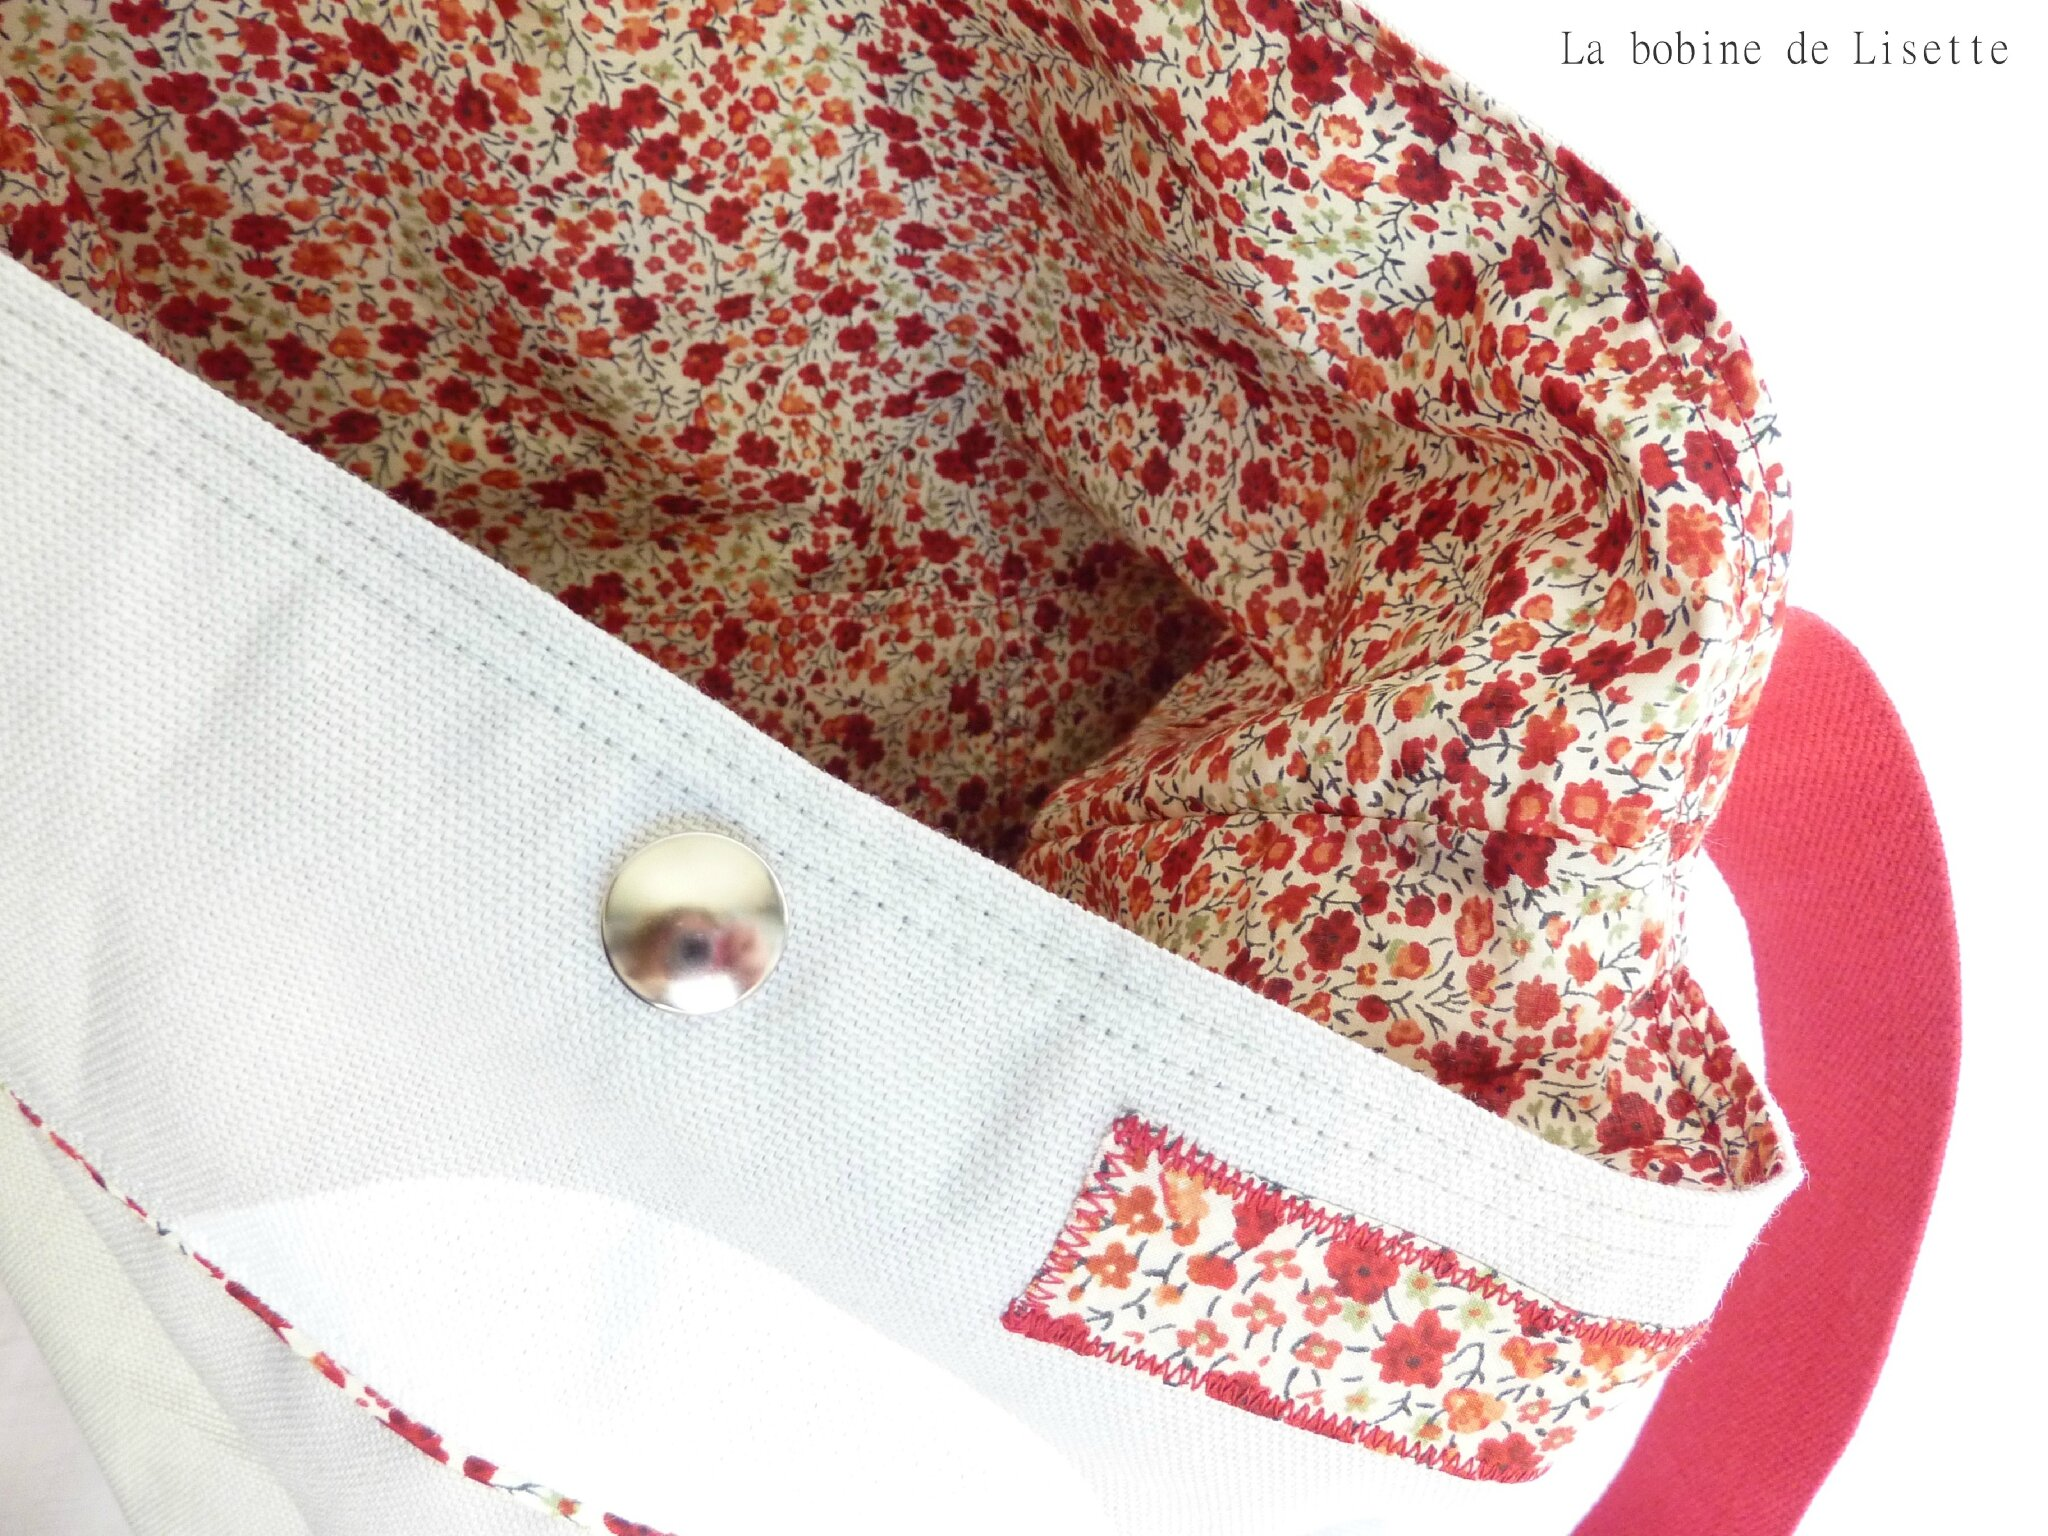 Grand sac en coton à pois et Liberty.